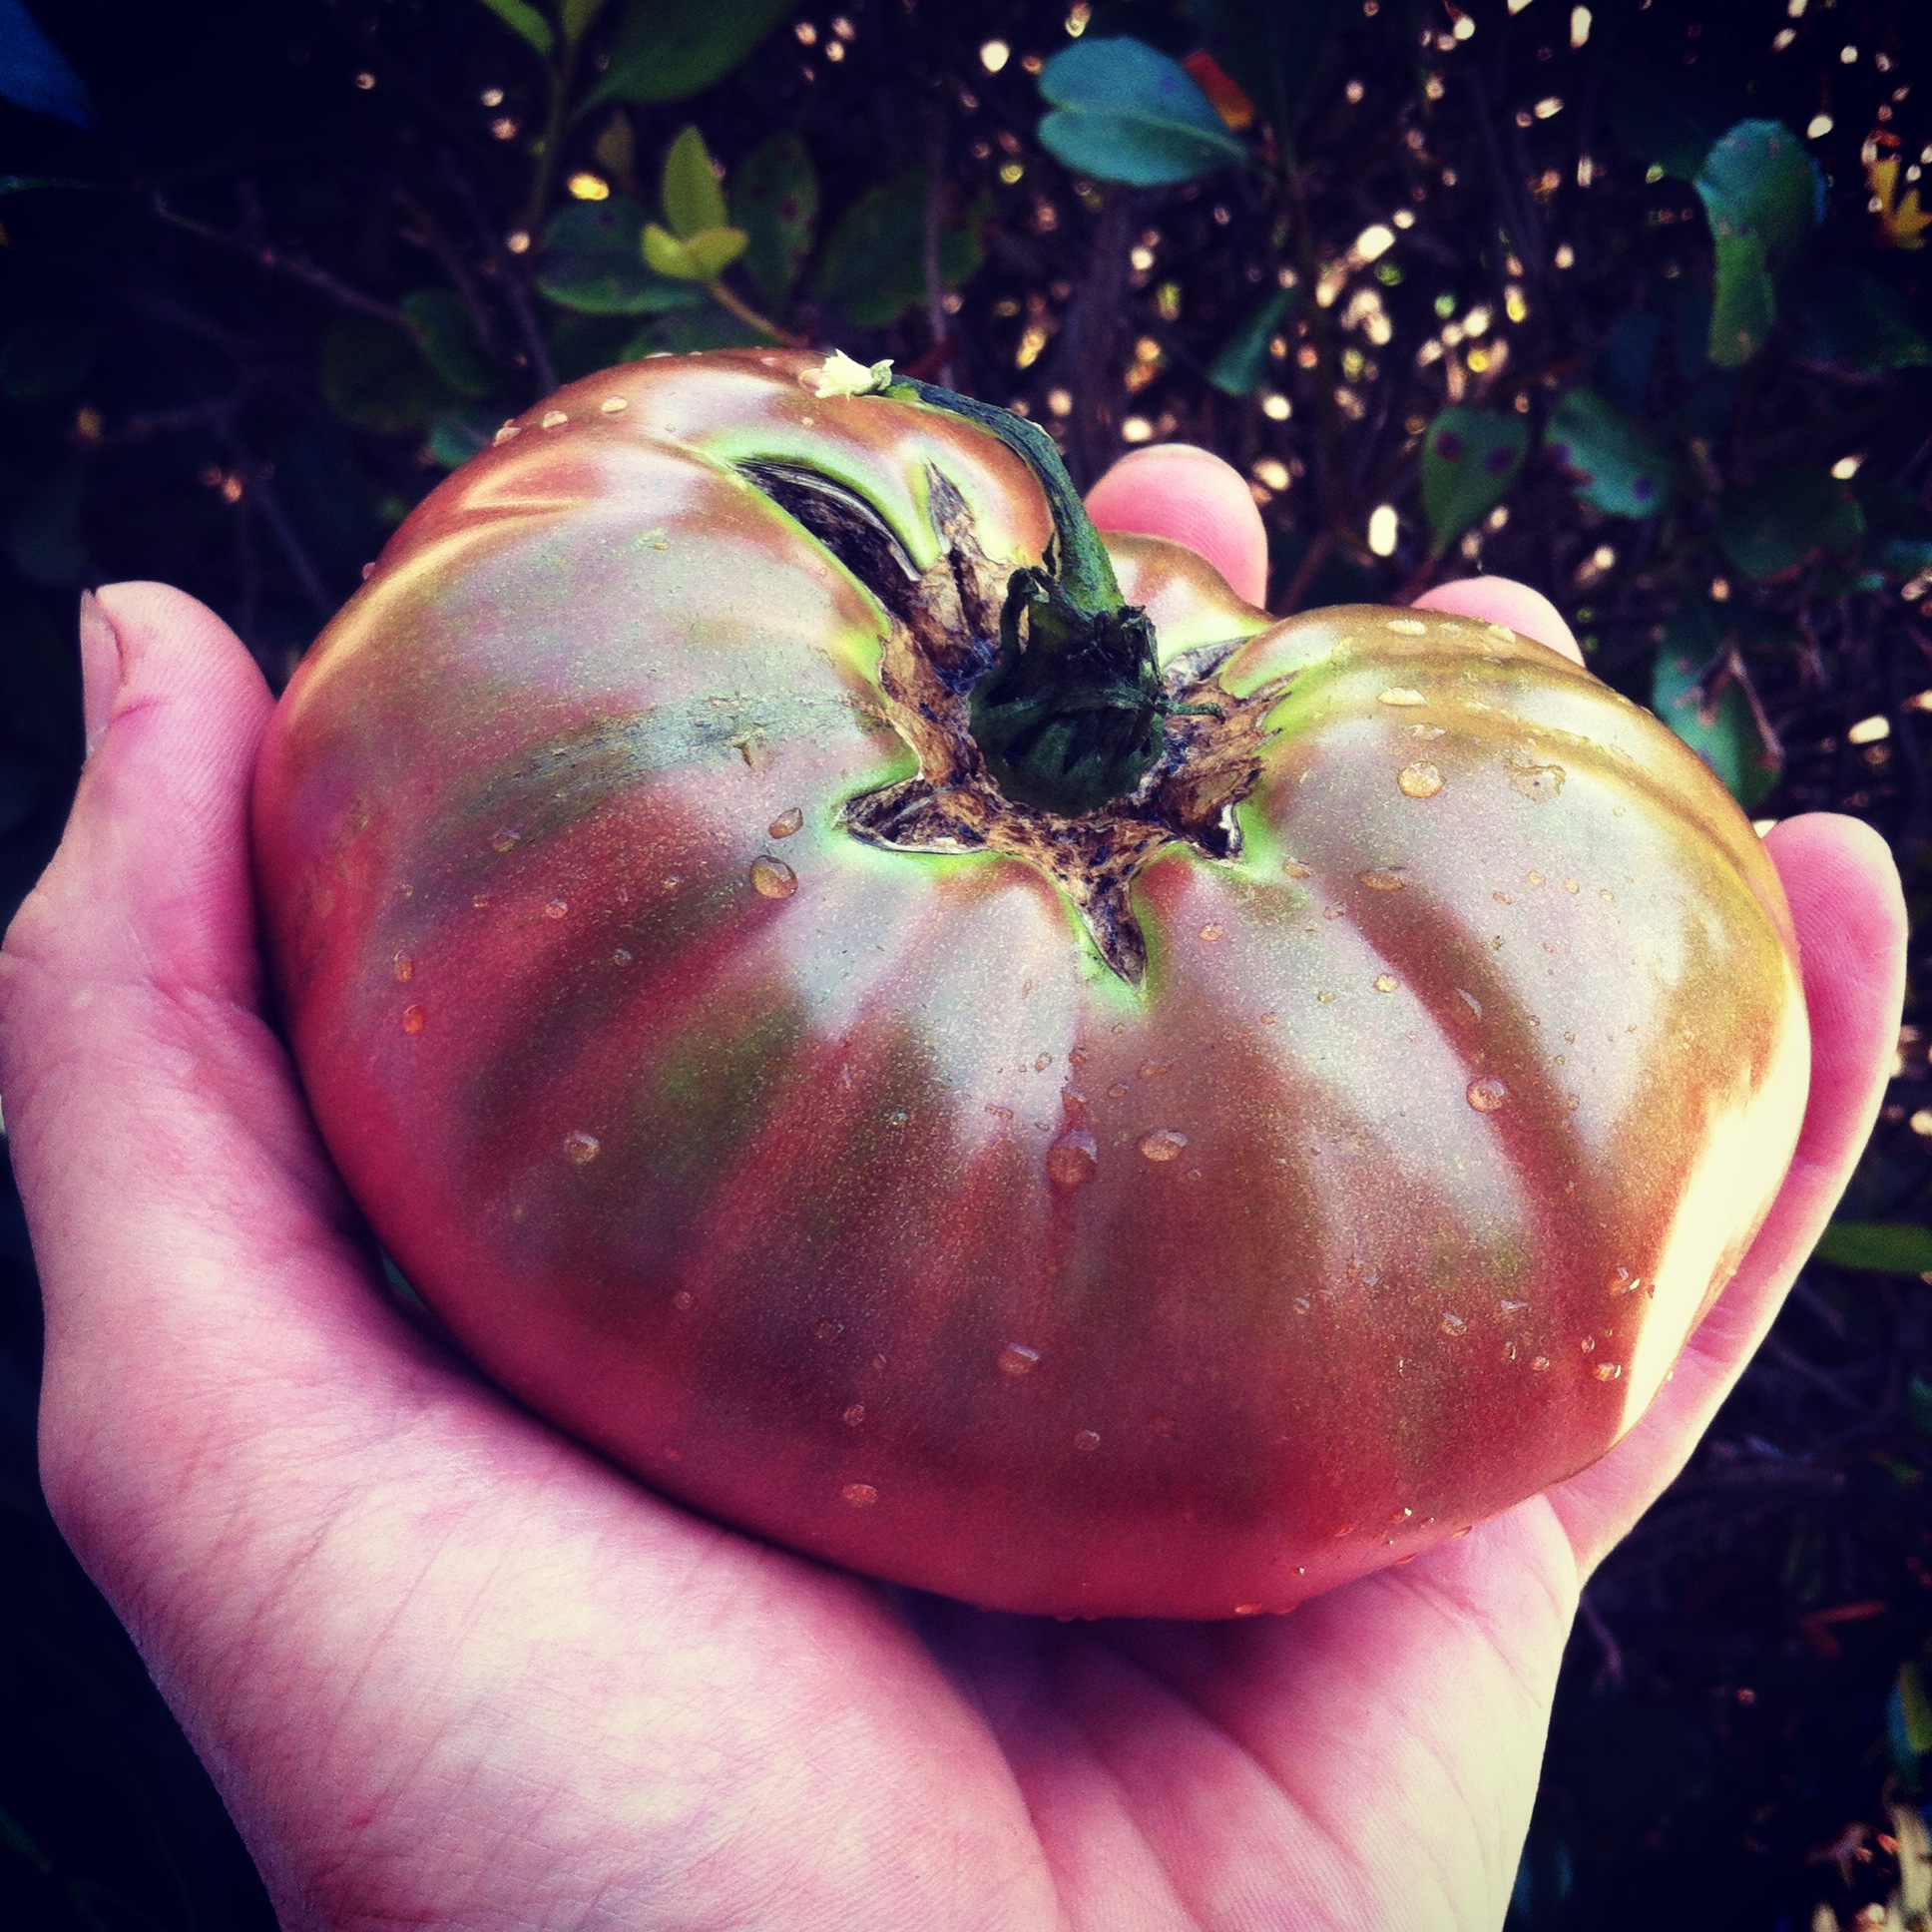 Mmmm... fresh-picked heirloom tomato!